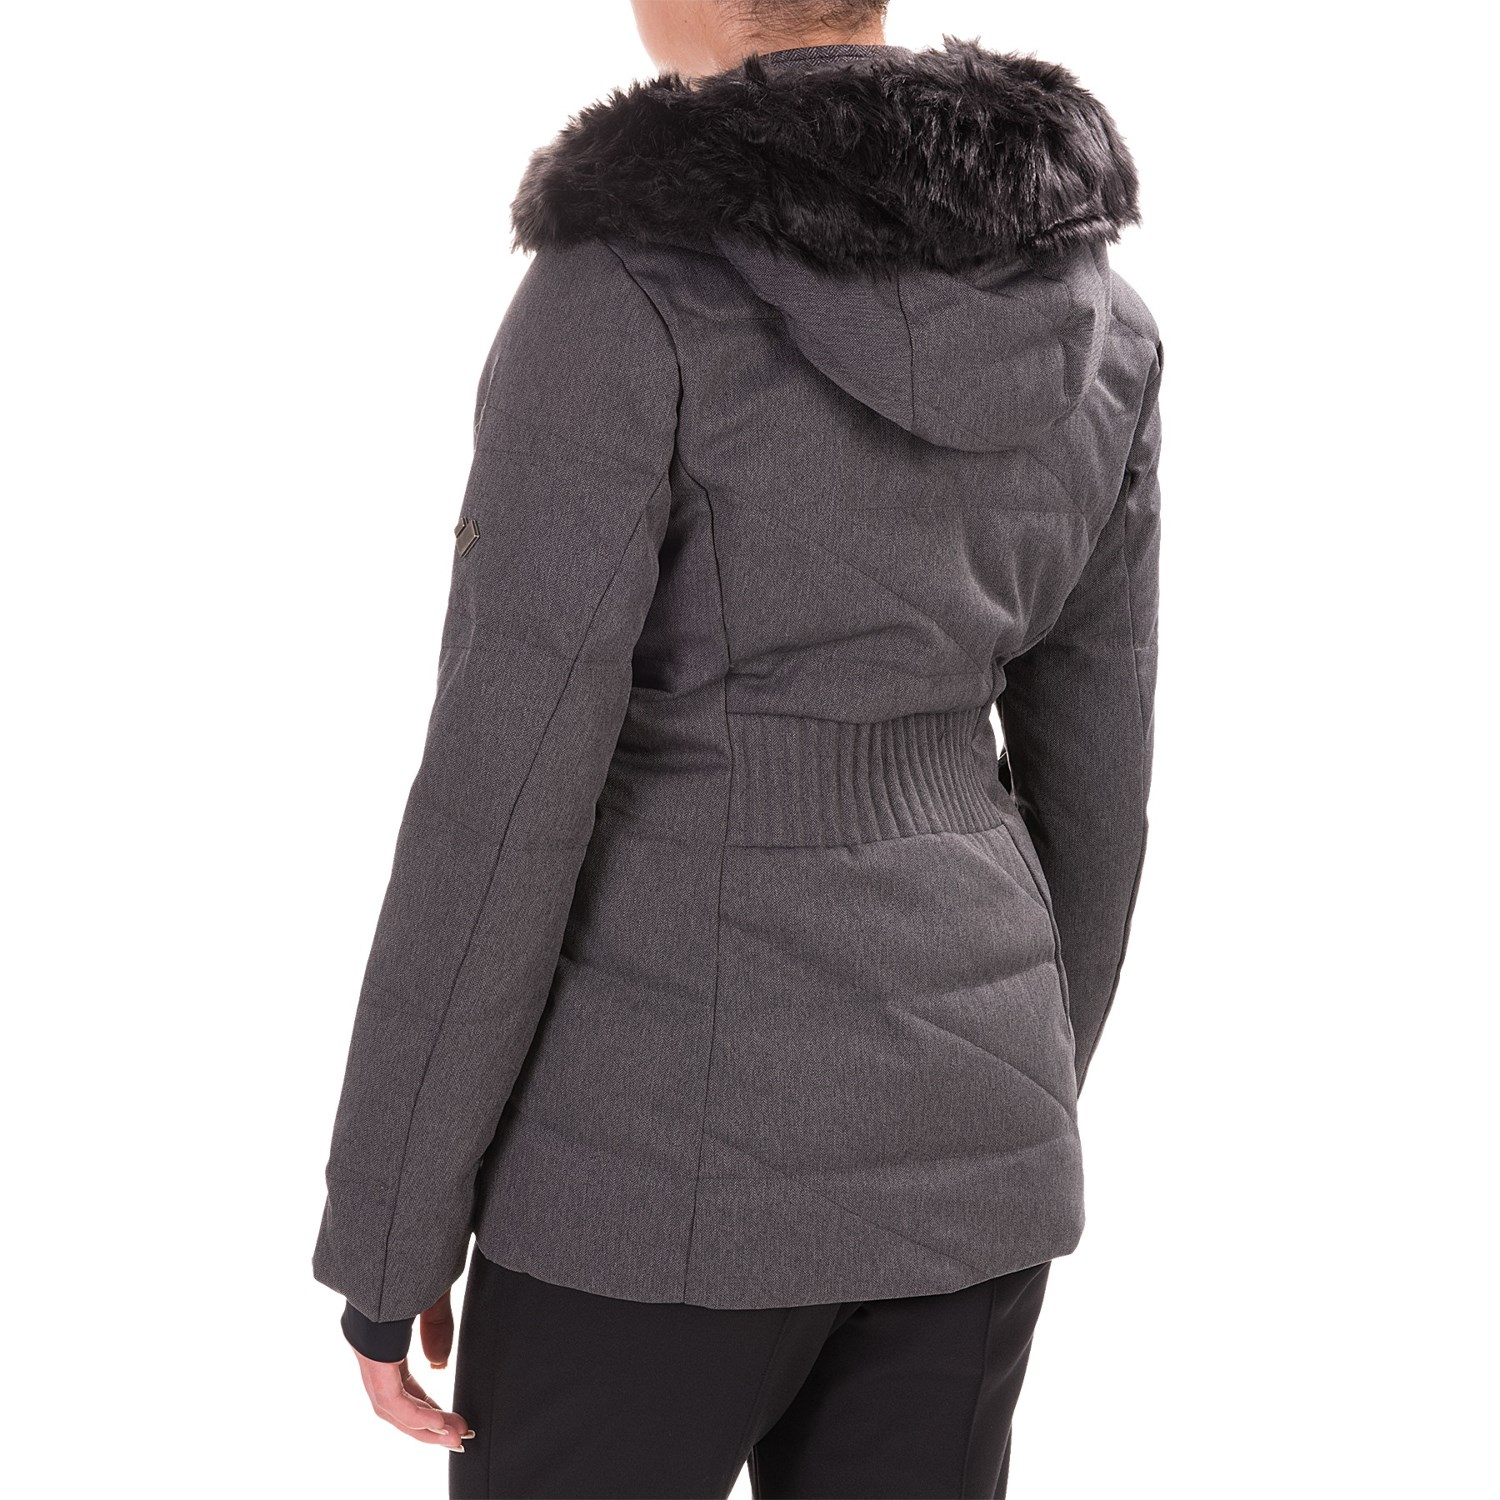 Obermeyer Bombshell Down Parka (For Women) - Save 60%